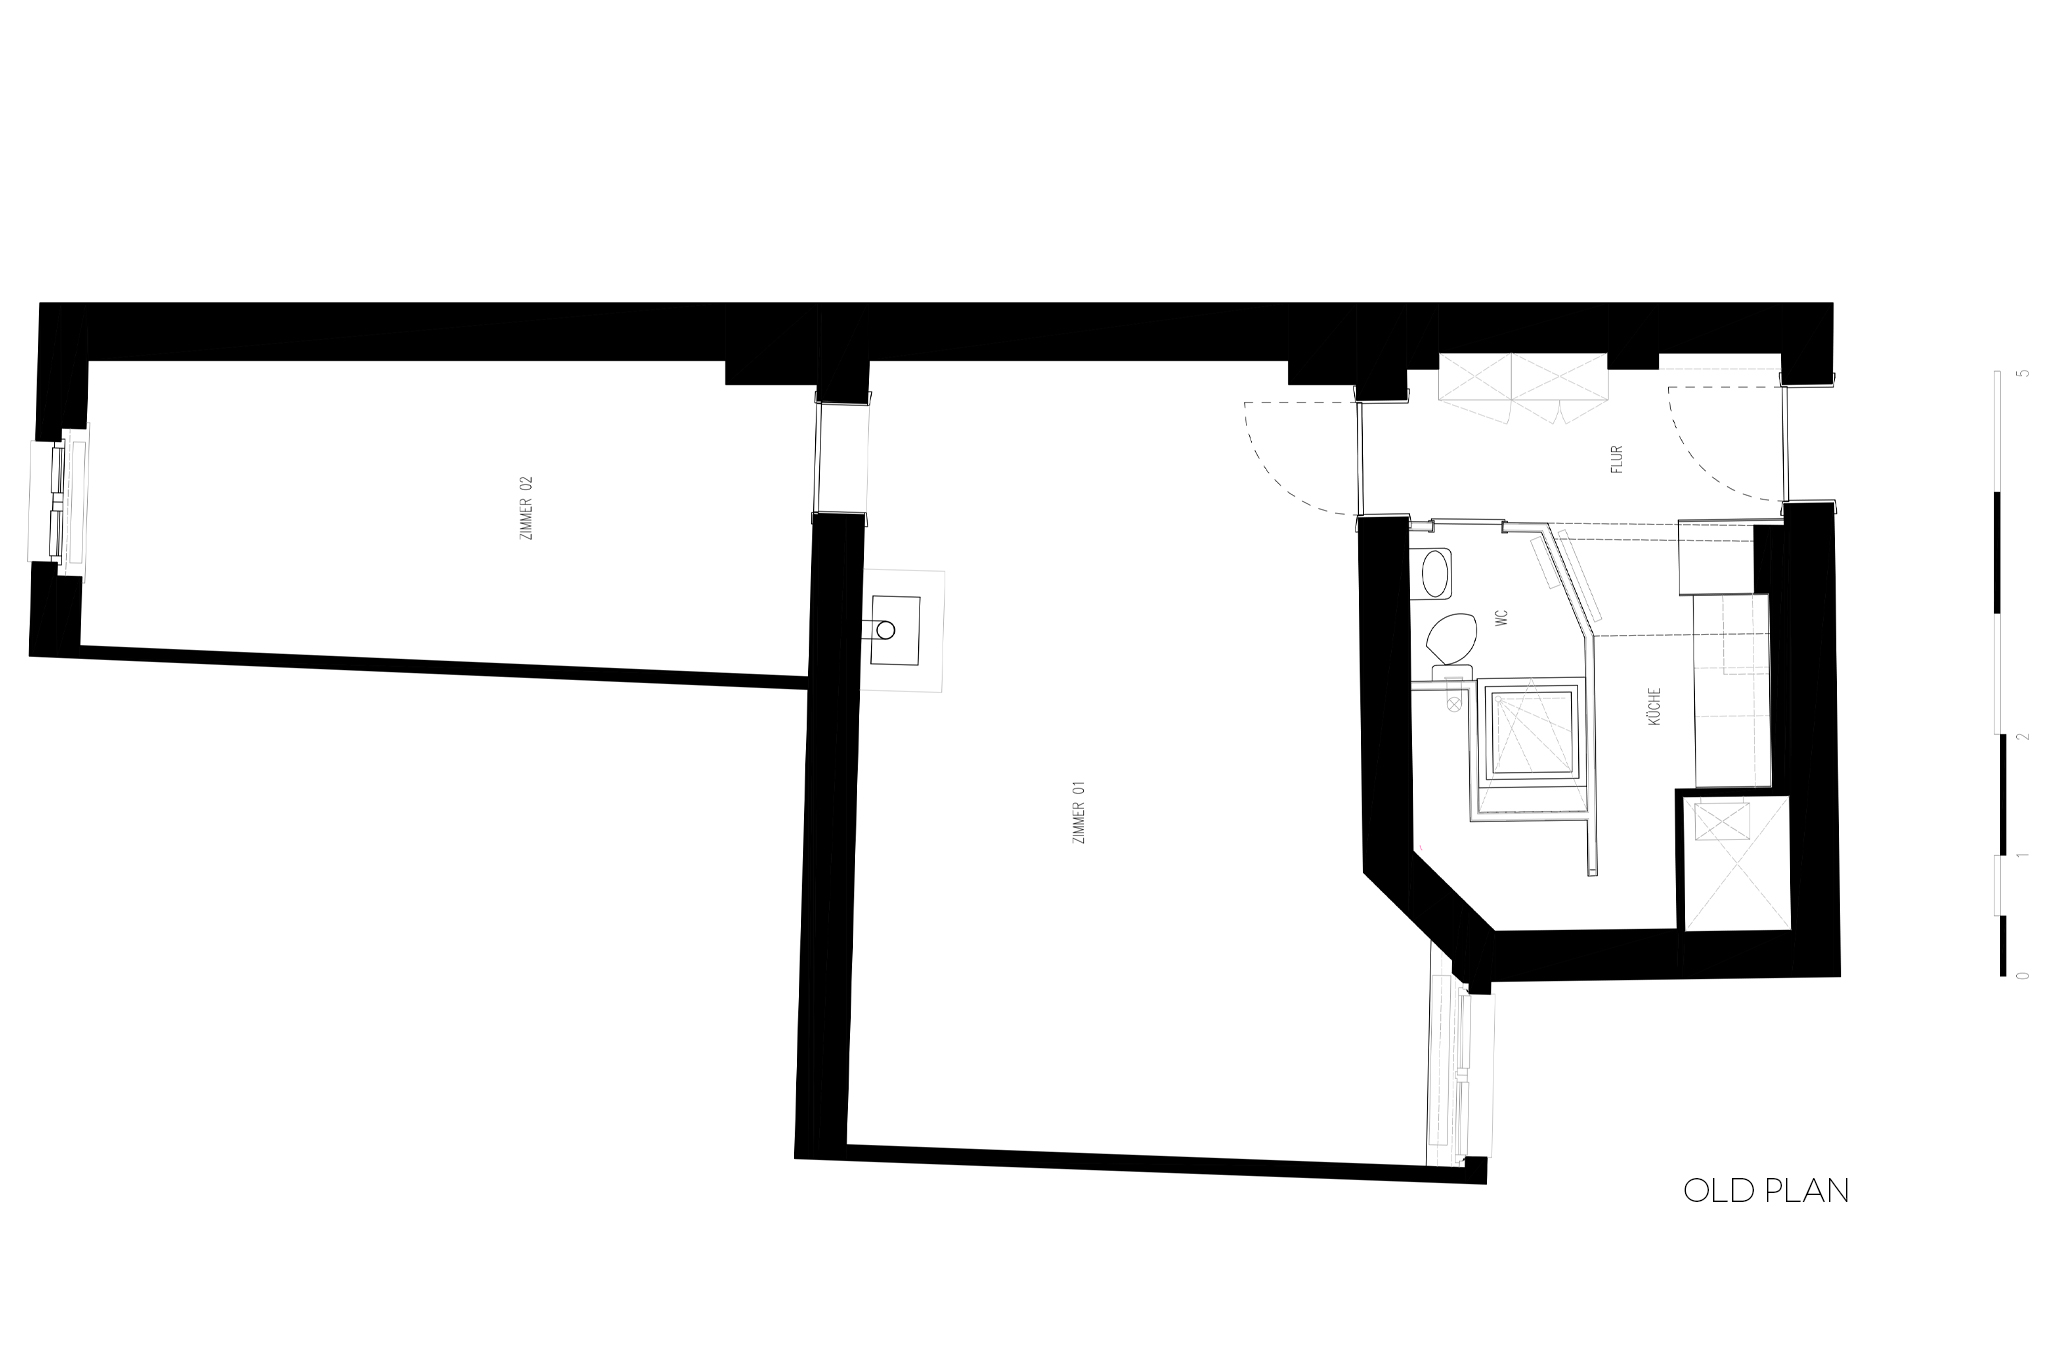 Paola_Bagna_Apartment_AM106_Berlin_Plan